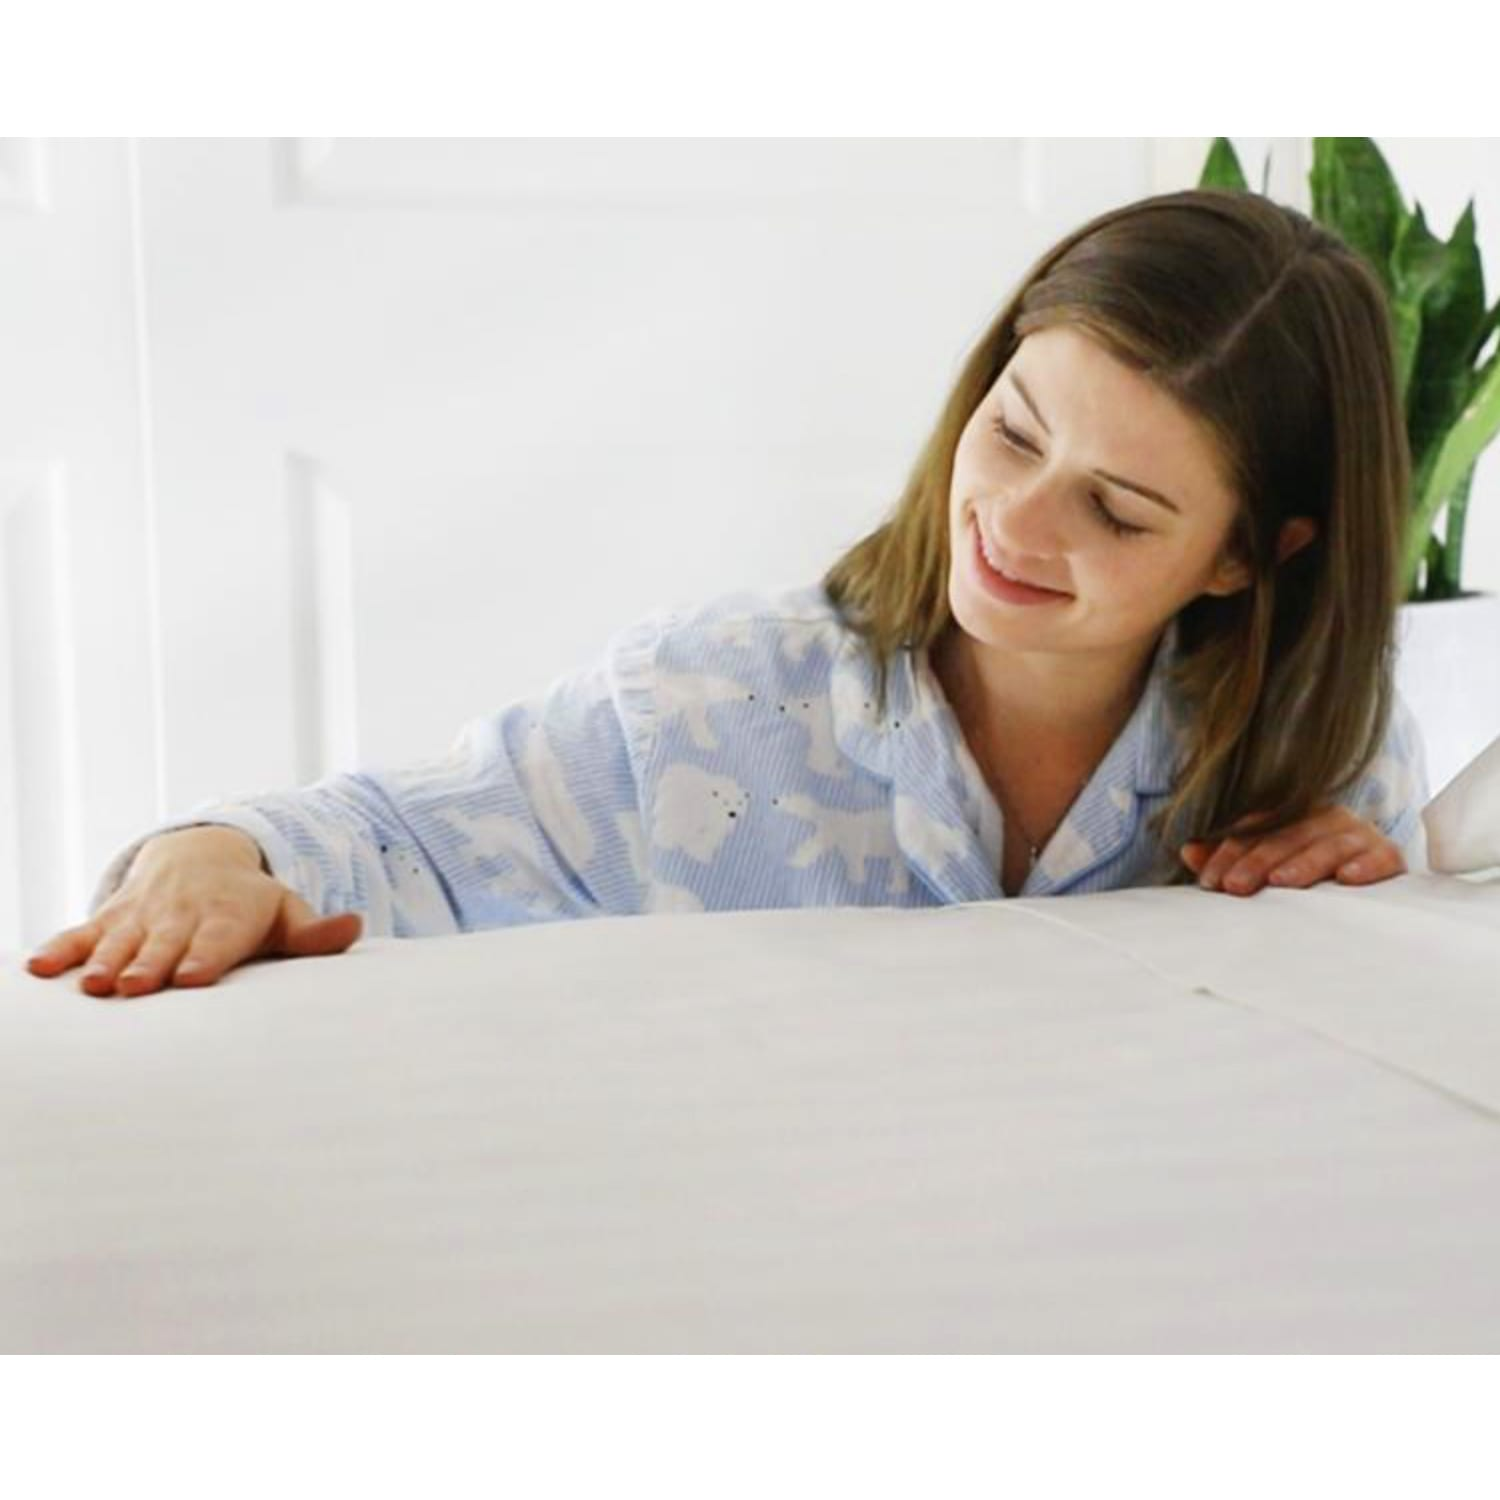 Woman touching Royal Deluxe Super Weave Dream Sheet on a bed